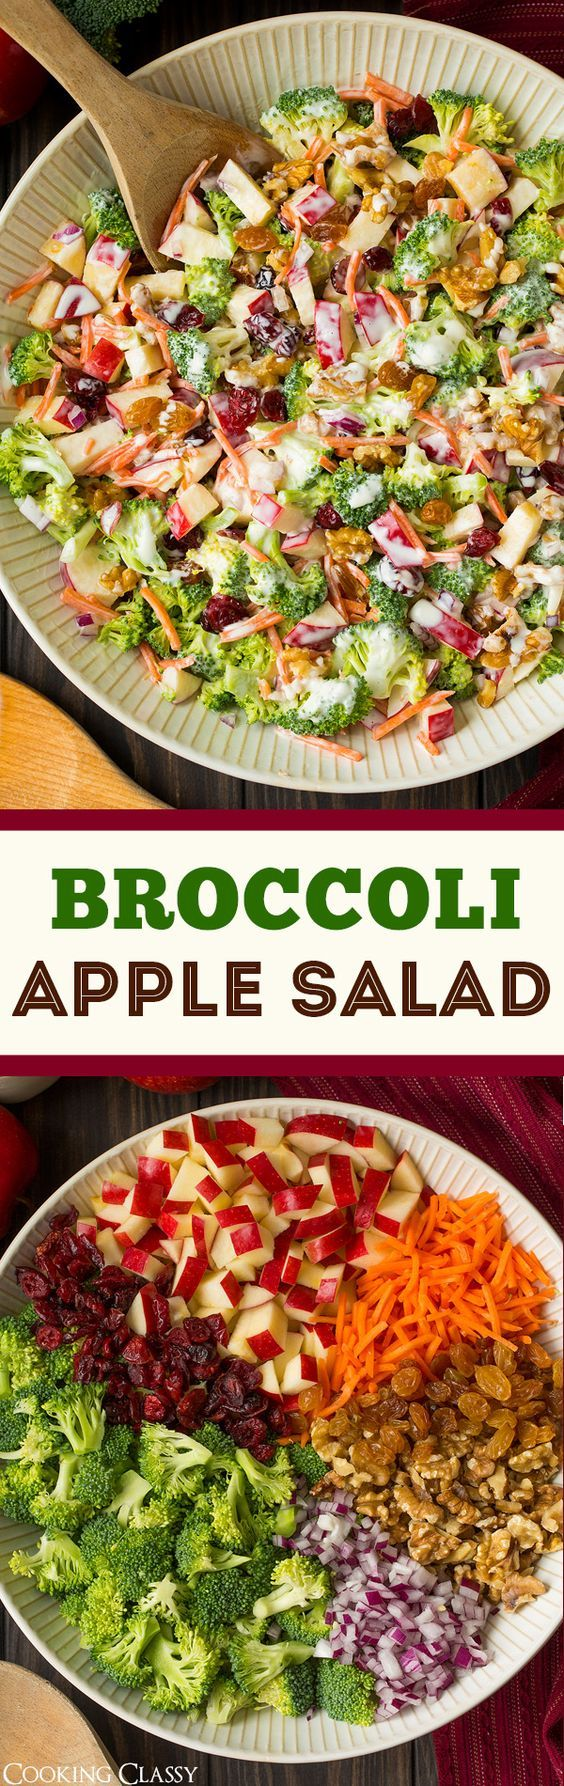 Broccoli Apple Salad.